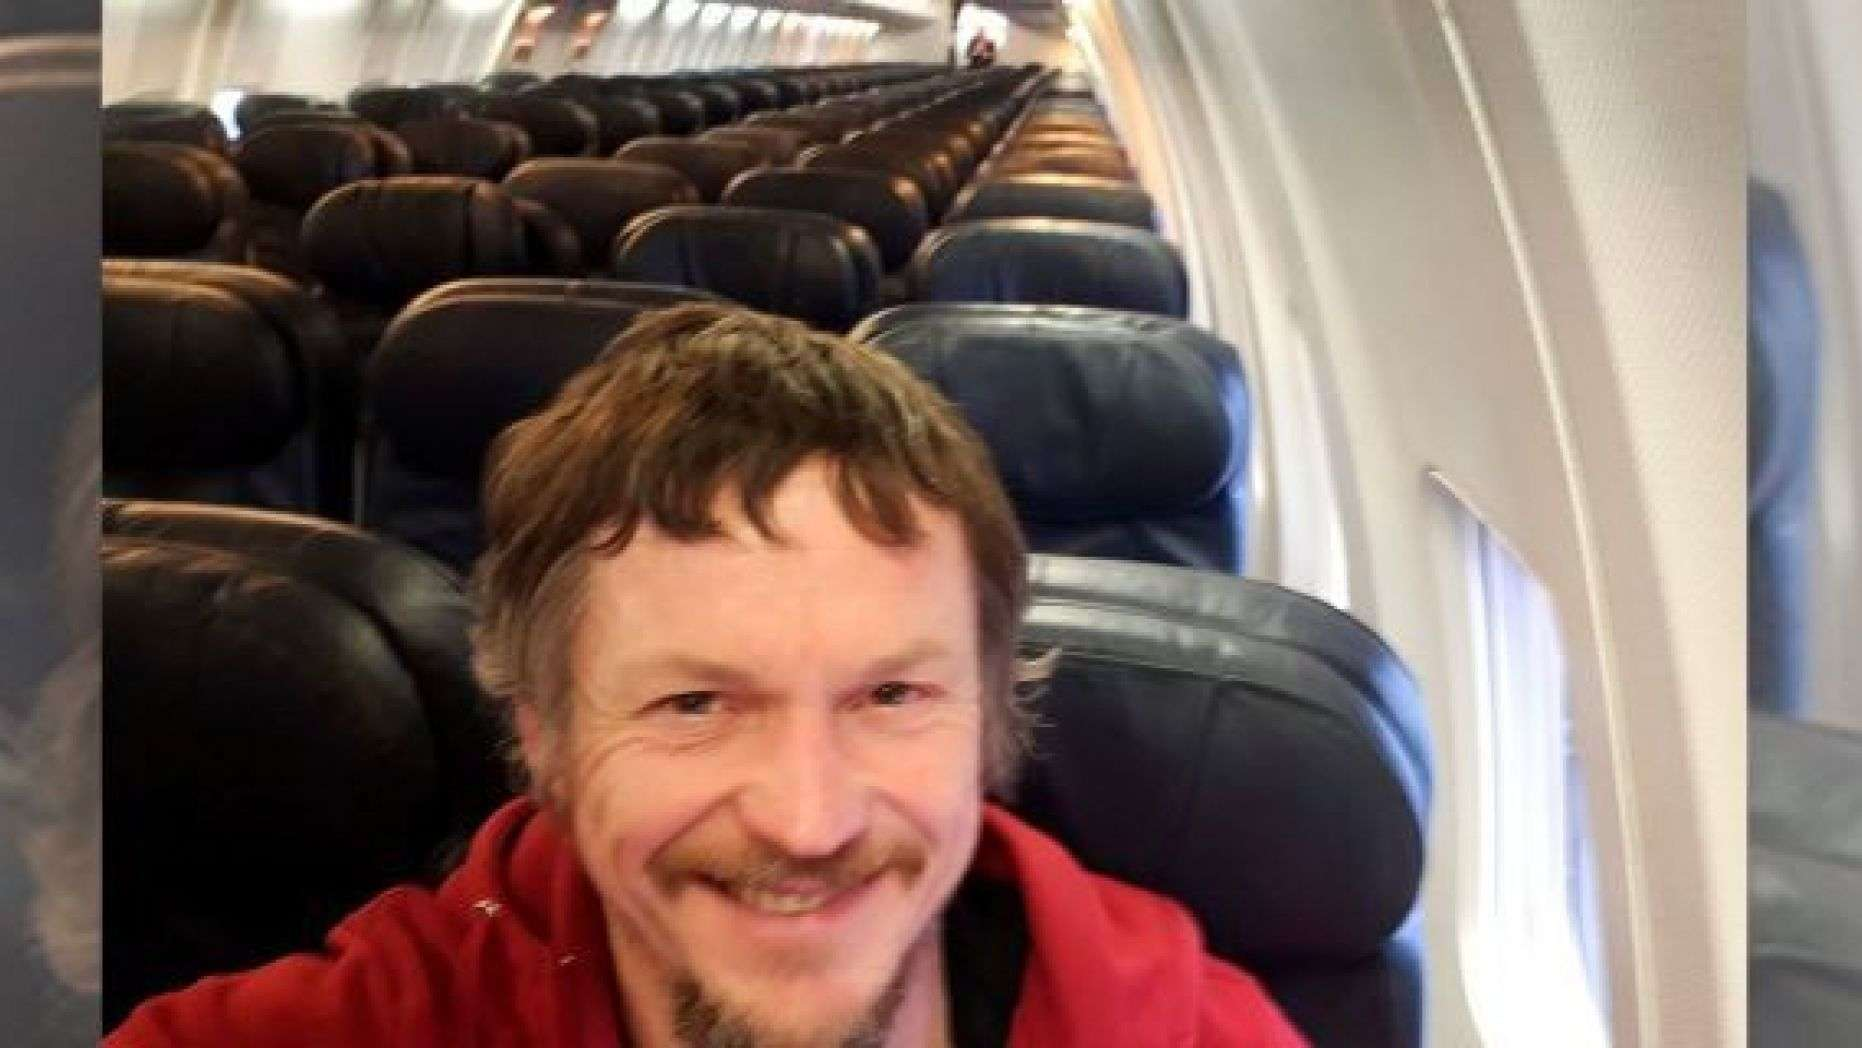 Lithuanian man gets uncommon experience of flying alone on commercial flight to Italy